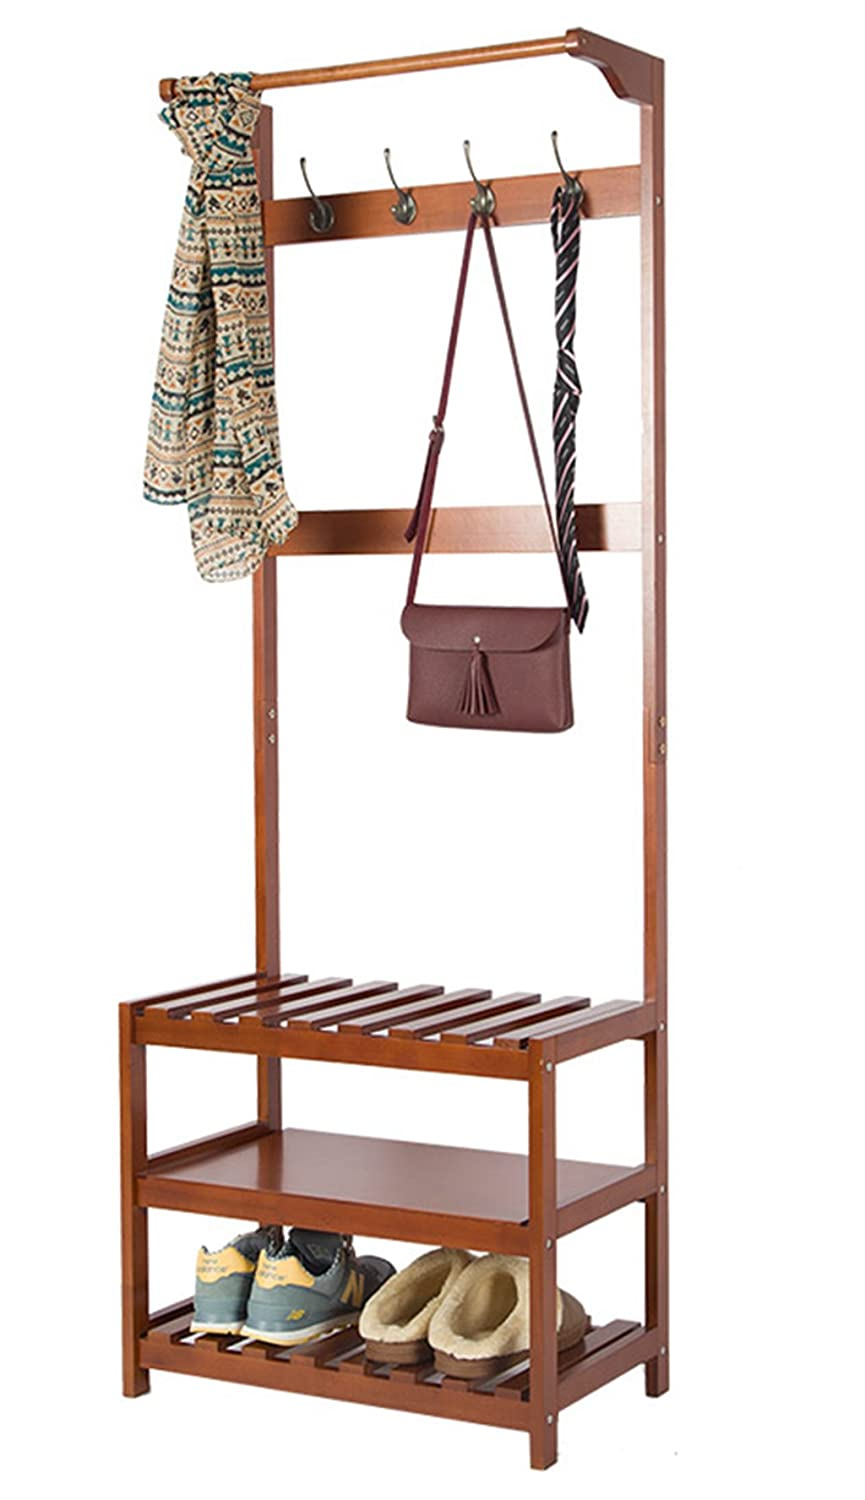 yaker's collection Wood Entryway Hall Tree Coat Rack with 4 Cloths Hat Hooks and 3 Tiers Storage Bench